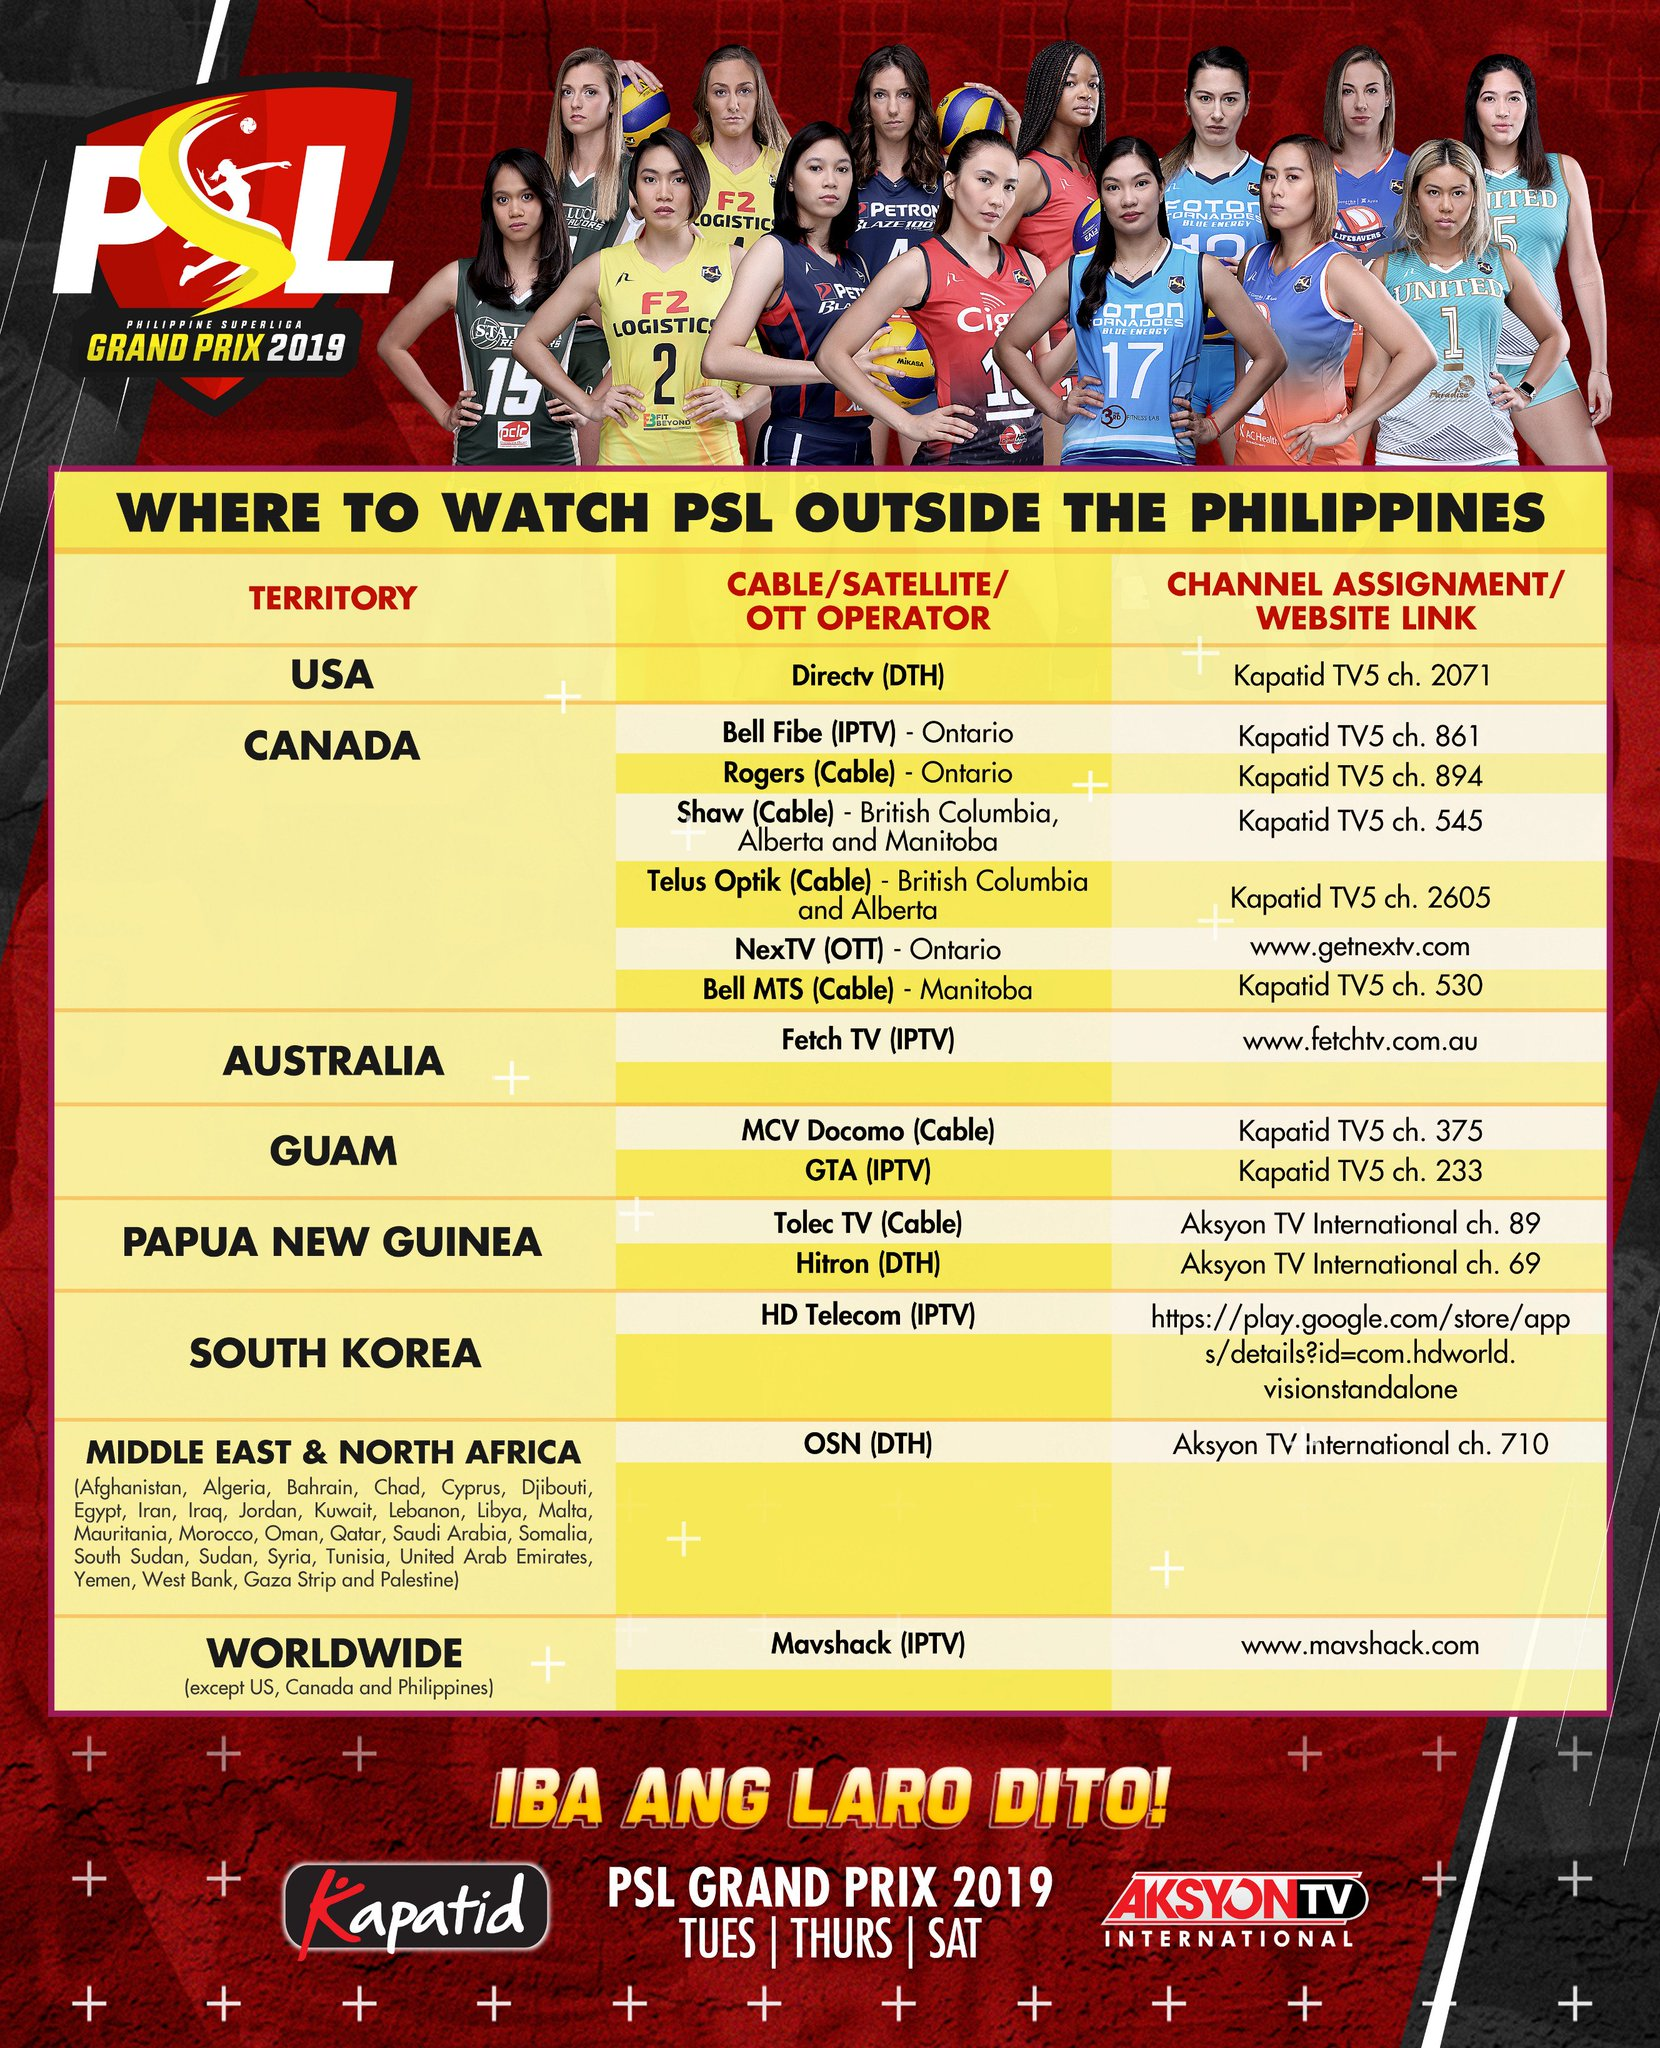 Here are the TV channels where you can watch PSL